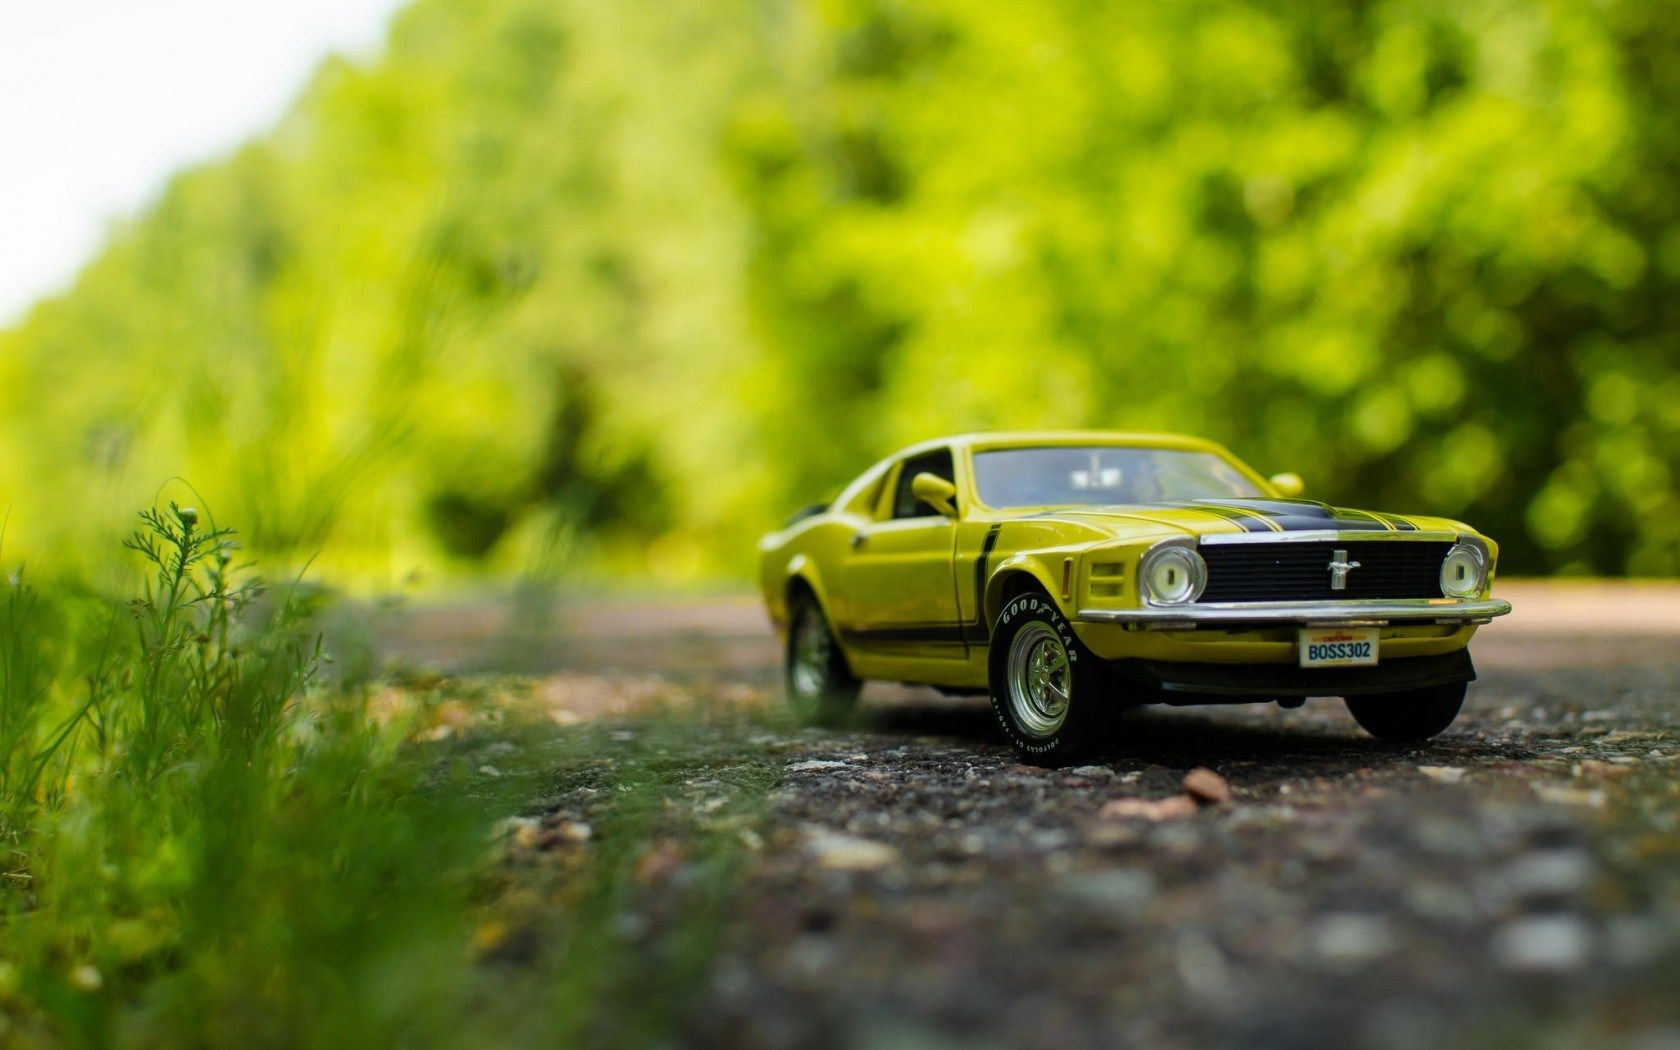 Ford Mustang Car Toy Carros Mustang Cars Miniature Photography